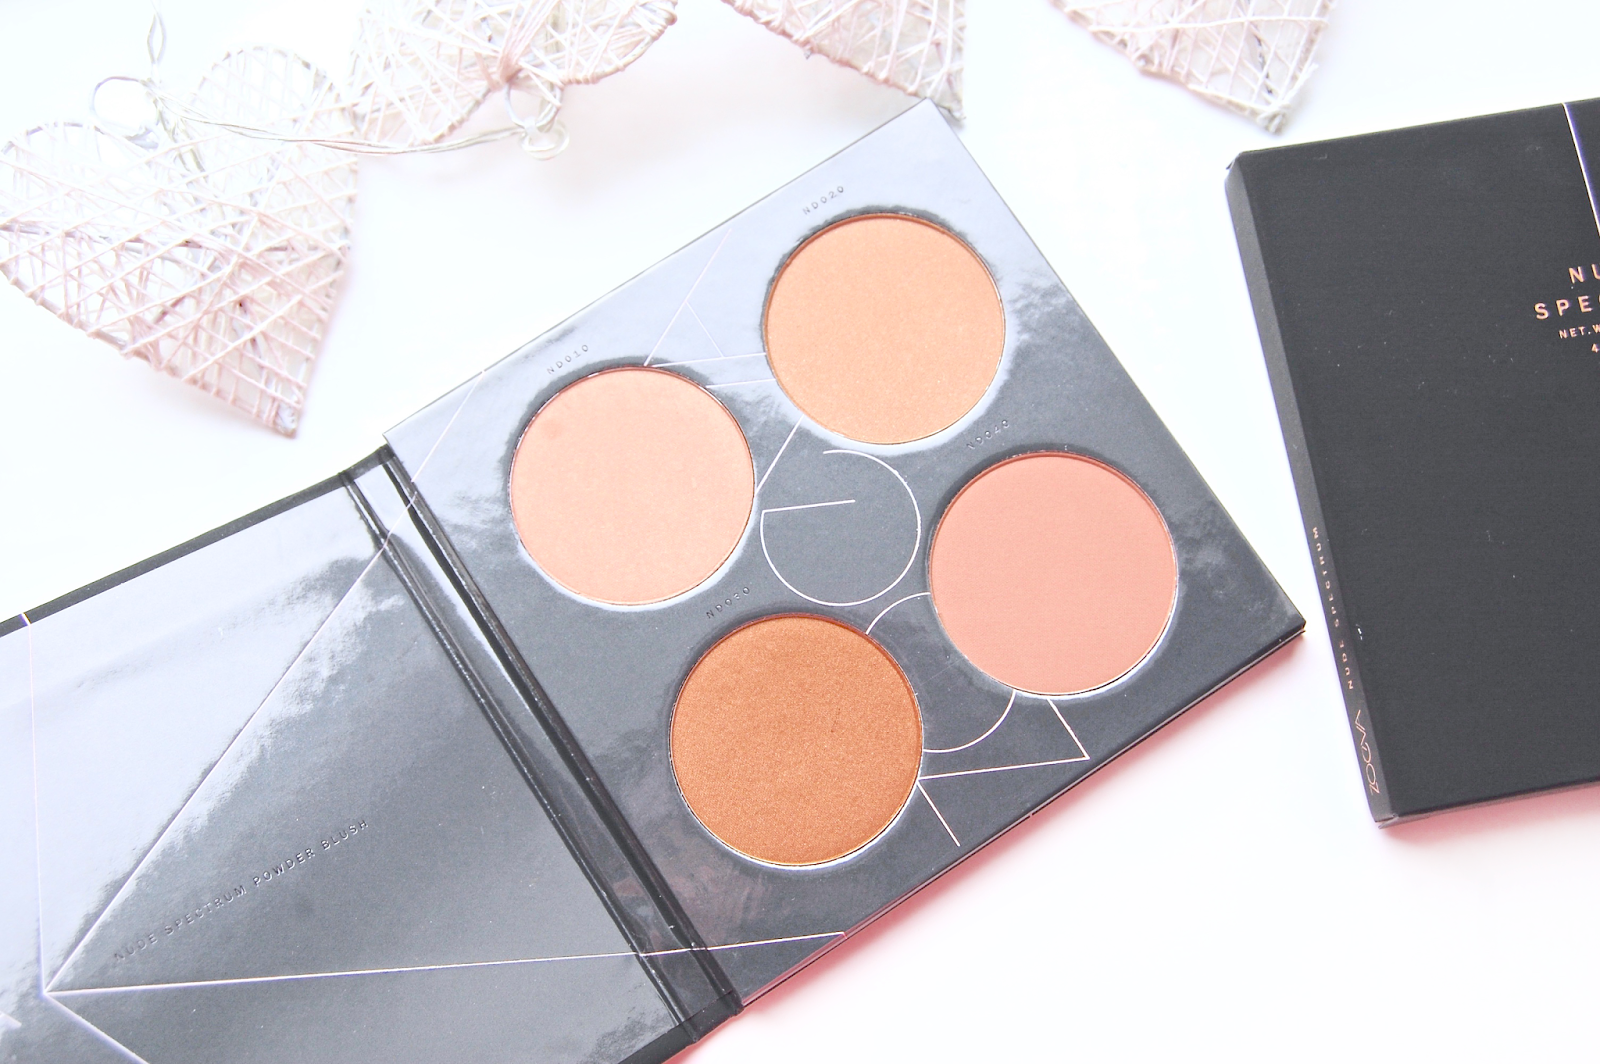 See my Zoeva Nude Spectrum review and swatches